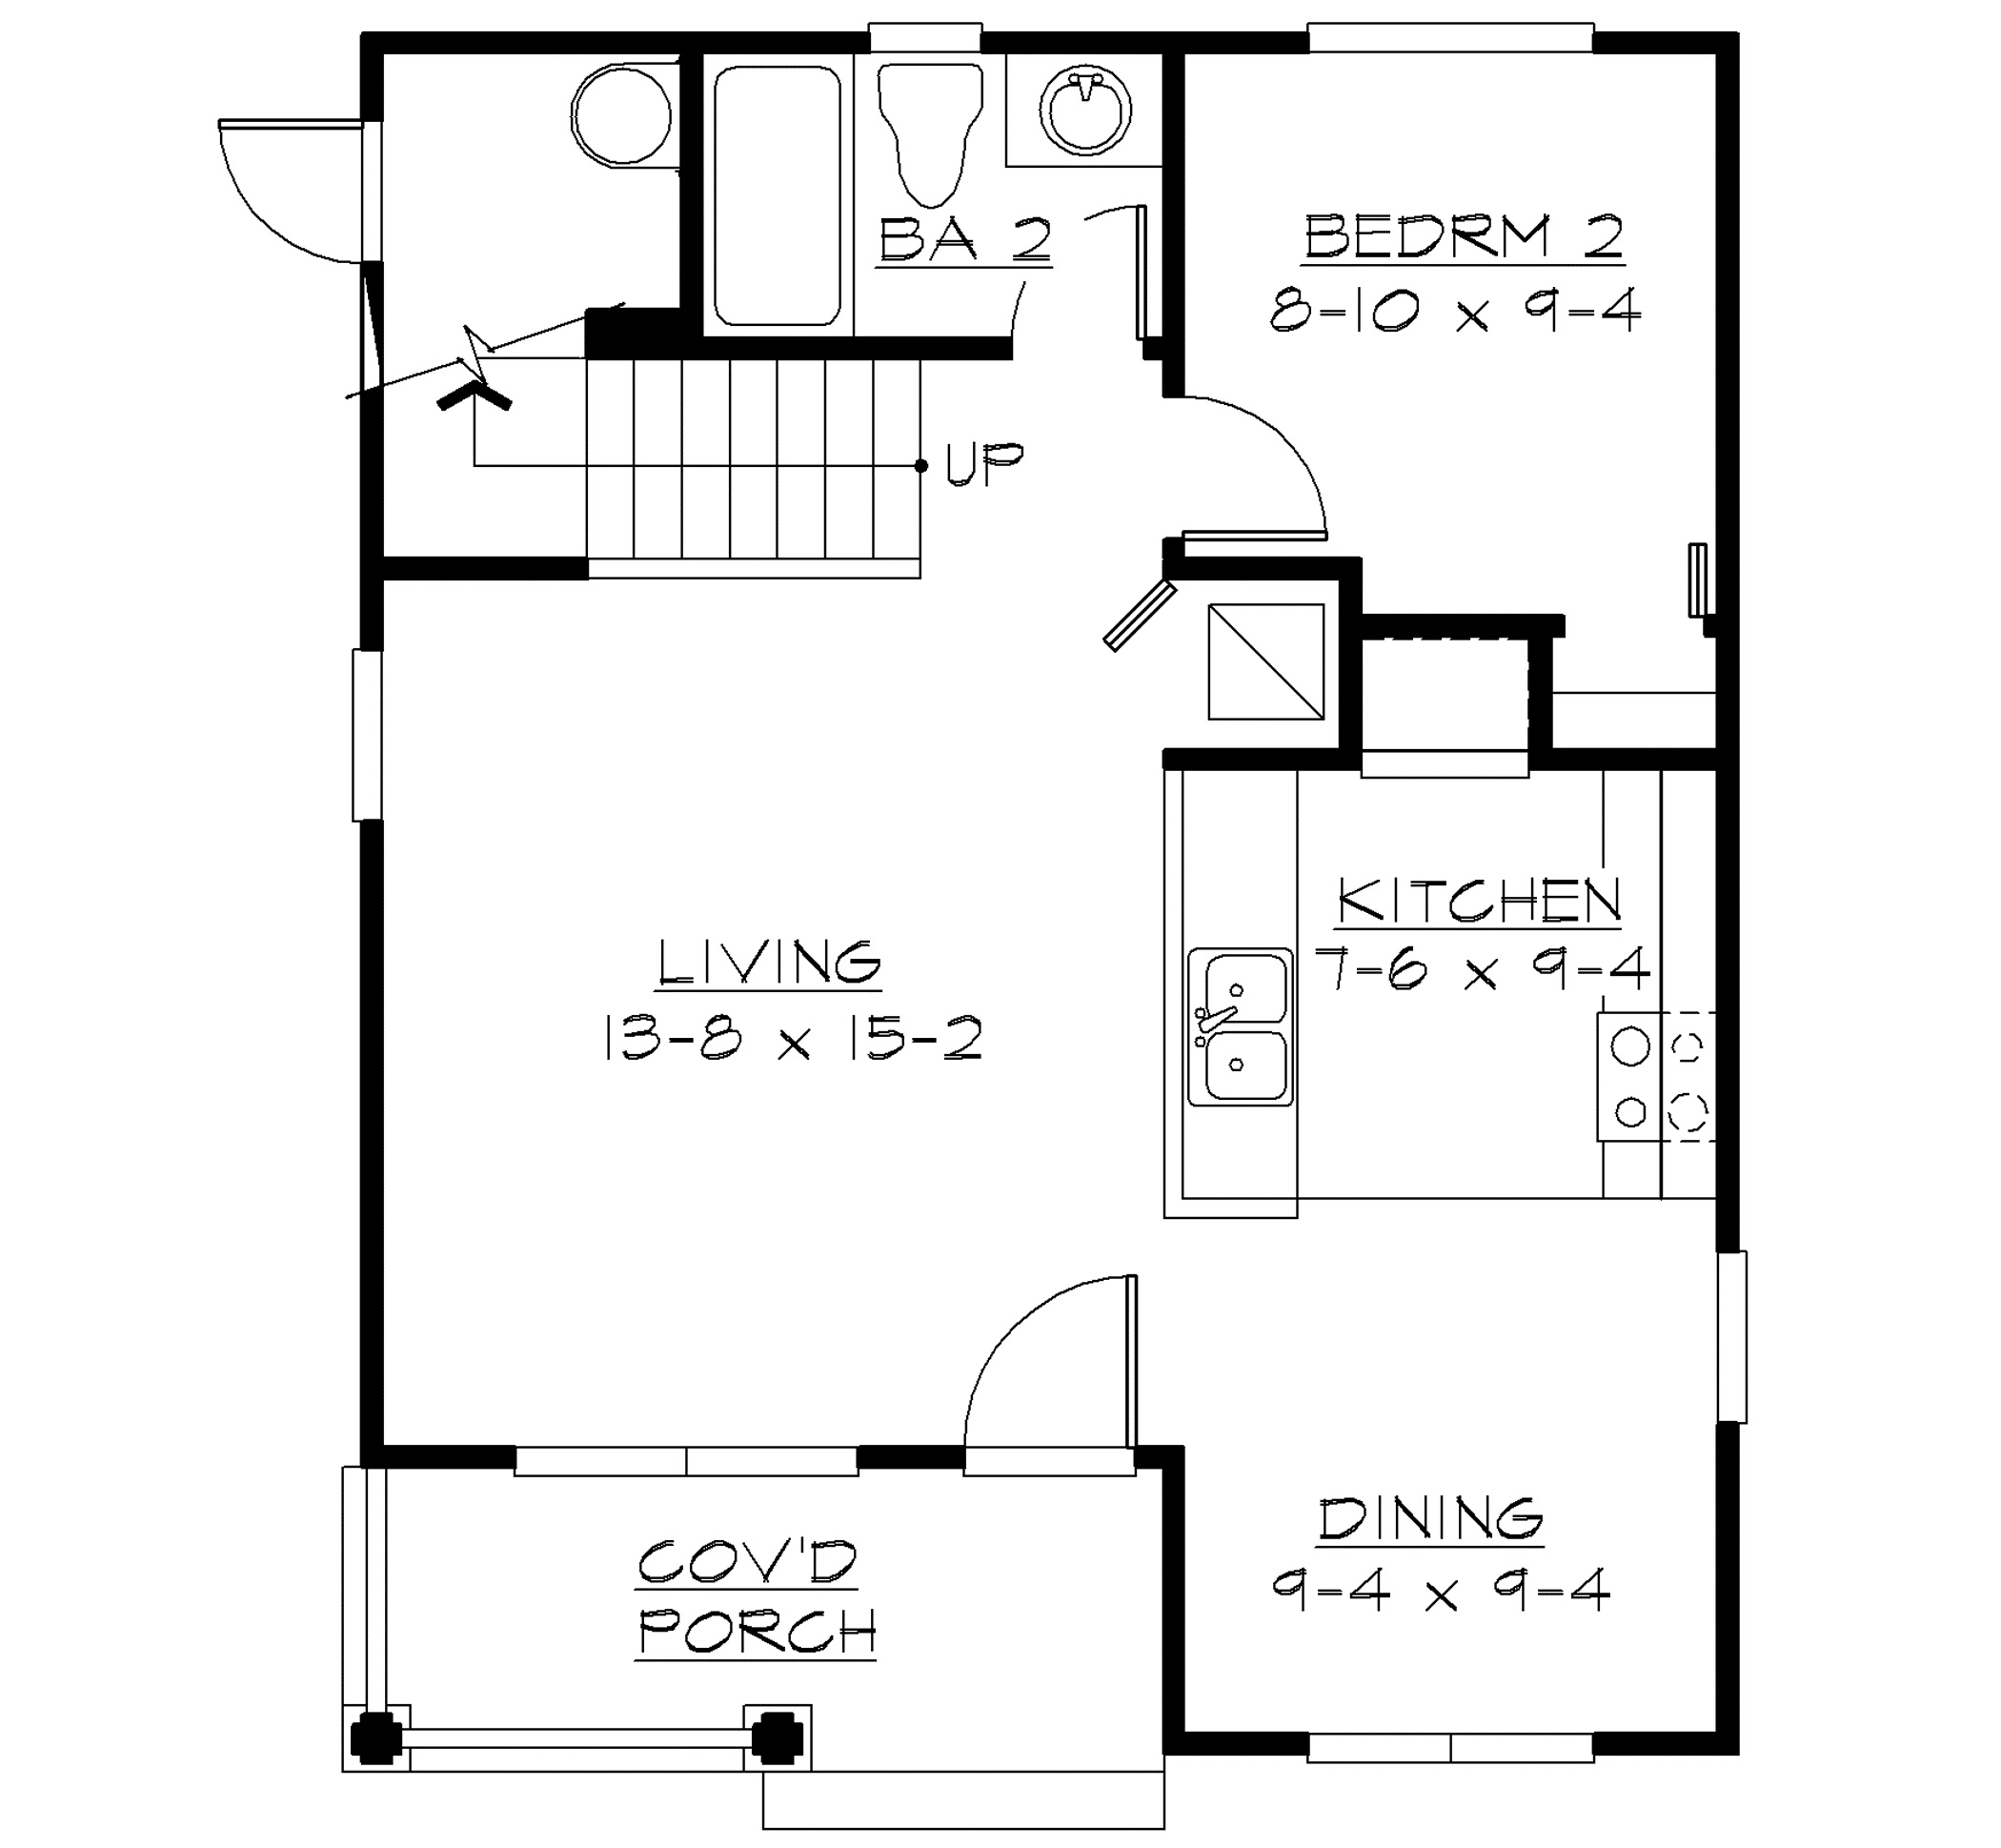 Small house plan first floor layout sdl custom homes for Custom home layouts